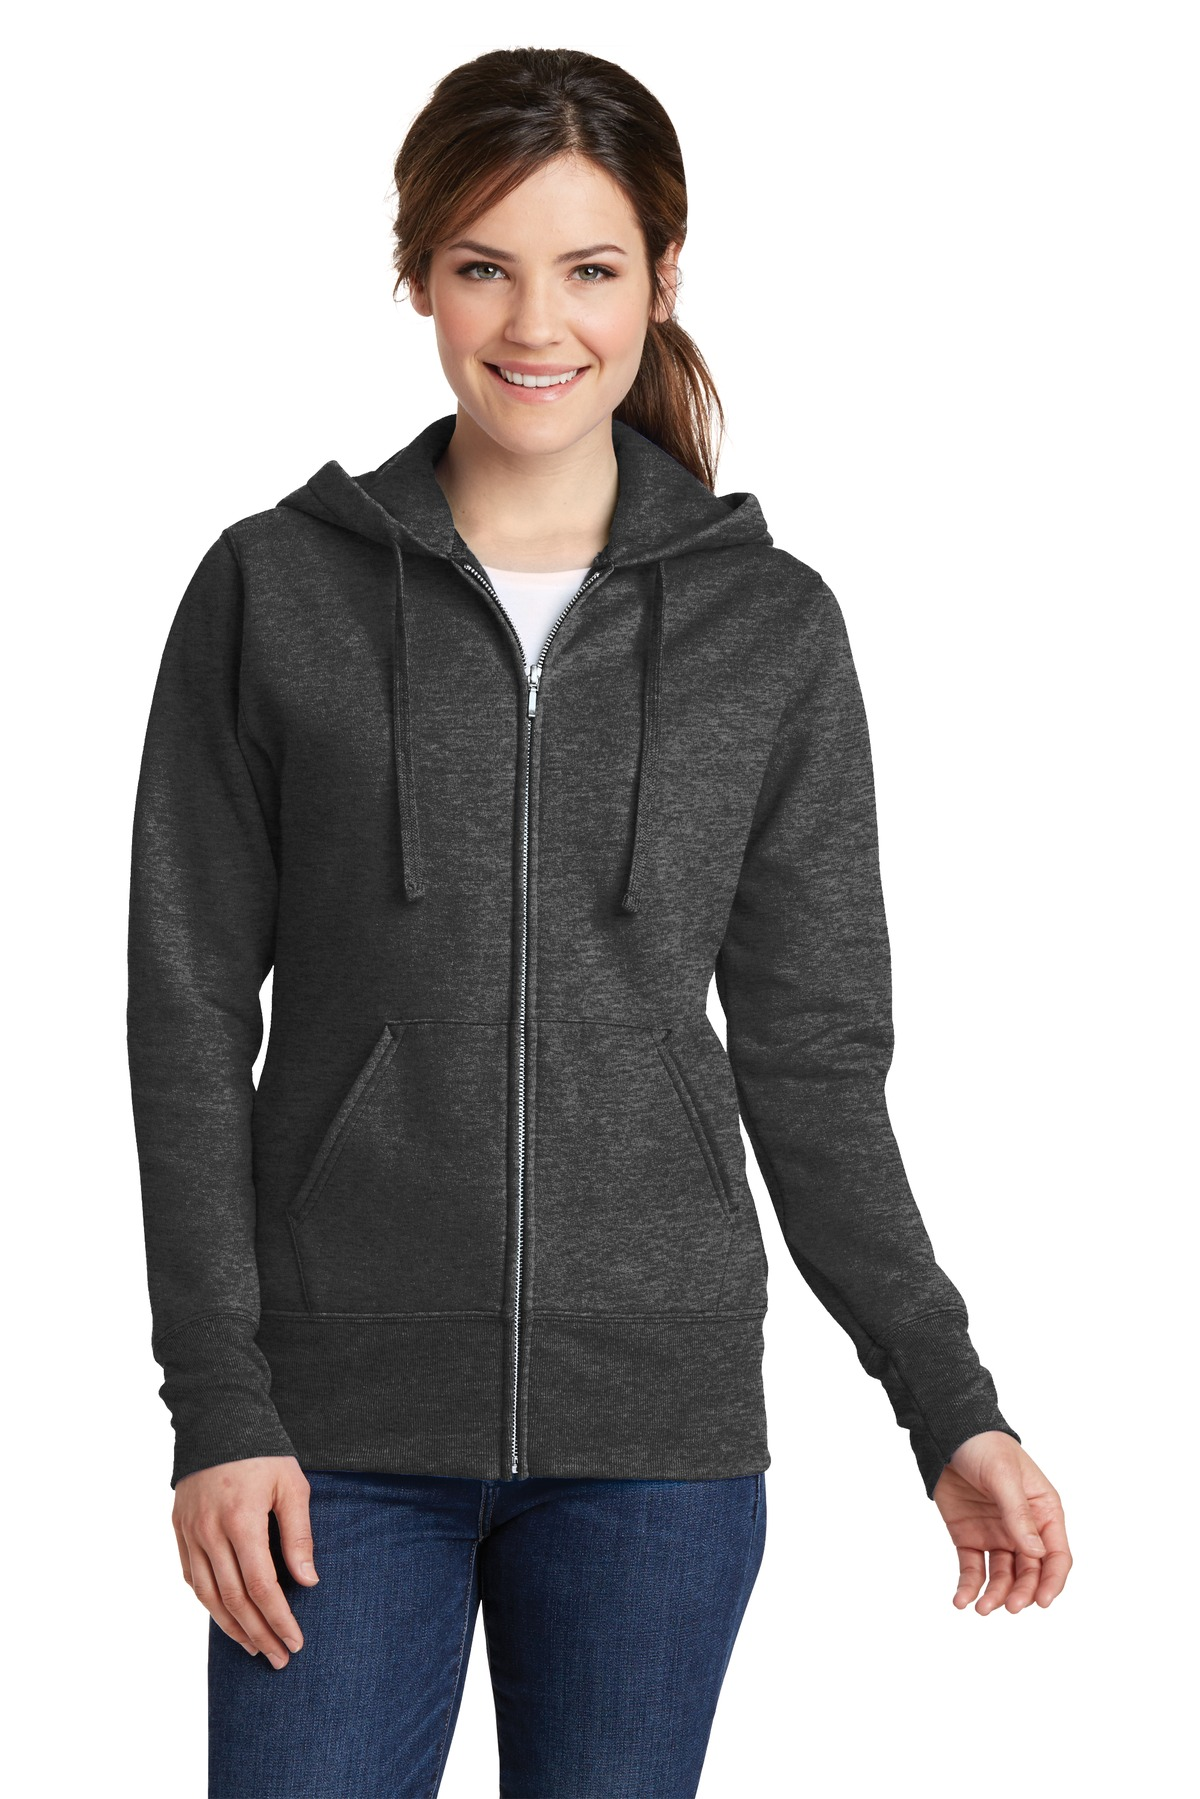 Port & Company ®  Ladies Core Fleece Full-Zip Hooded Sweatshirt. LPC78ZH - Dark Heather Grey